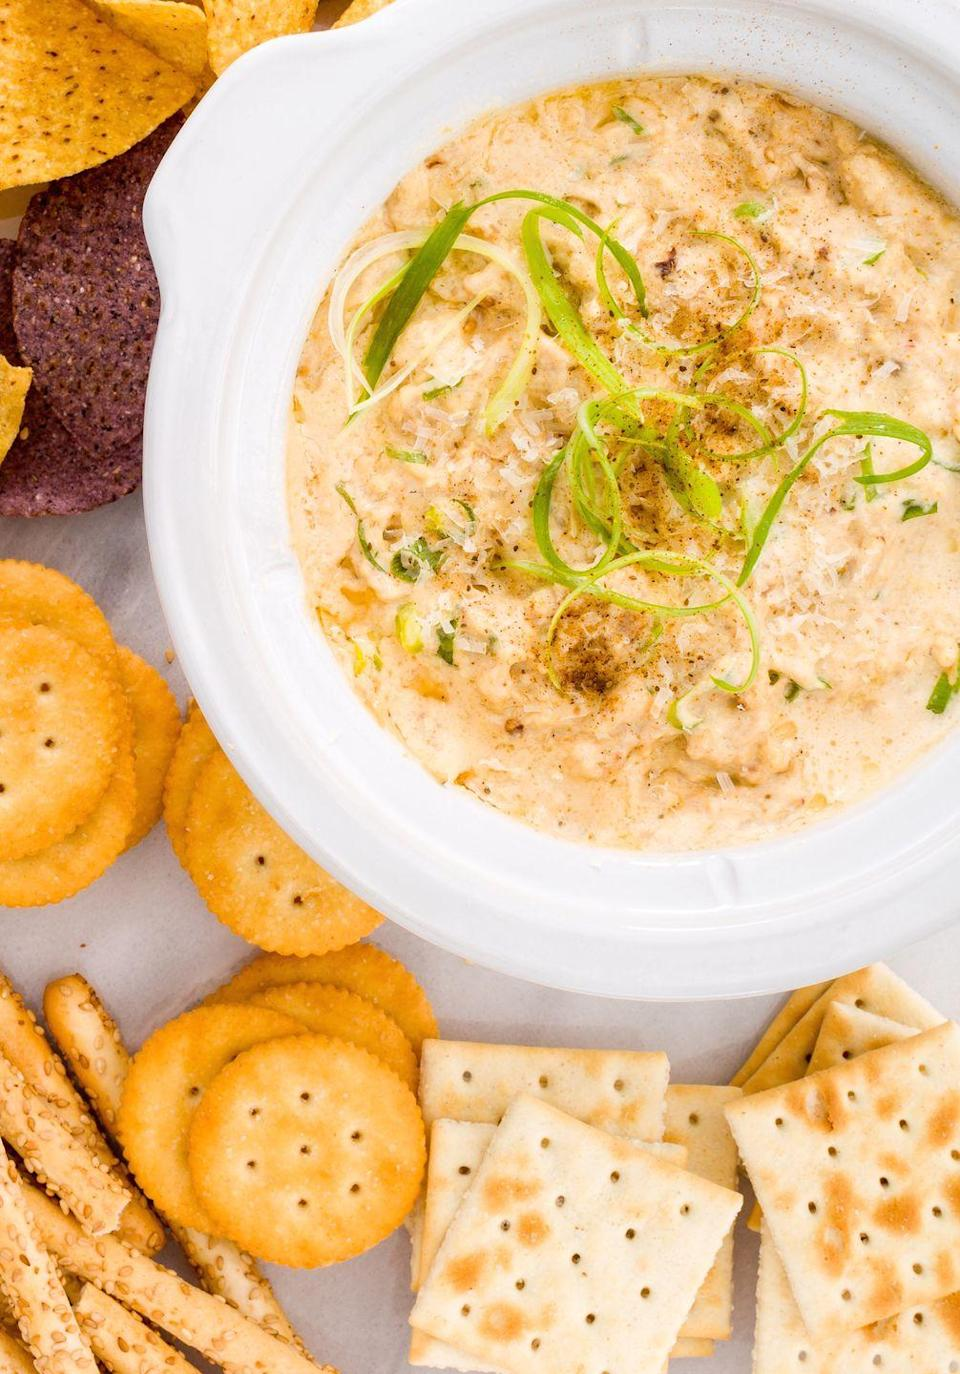 """<p>Just swap out the Ritz Crackers for serving with this <a href=""""https://www.delish.com/cooking/recipe-ideas/a25633559/keto-crackers-recipe/"""" rel=""""nofollow noopener"""" target=""""_blank"""" data-ylk=""""slk:Keto rendition"""" class=""""link rapid-noclick-resp"""">Keto rendition</a> and you're good to go.</p><p>Get the recipe from <a href=""""https://www.delish.com/cooking/recipe-ideas/recipes/a44678/slow-cooker-crab-dip-recipe/"""" rel=""""nofollow noopener"""" target=""""_blank"""" data-ylk=""""slk:Delish"""" class=""""link rapid-noclick-resp"""">Delish</a>. </p>"""